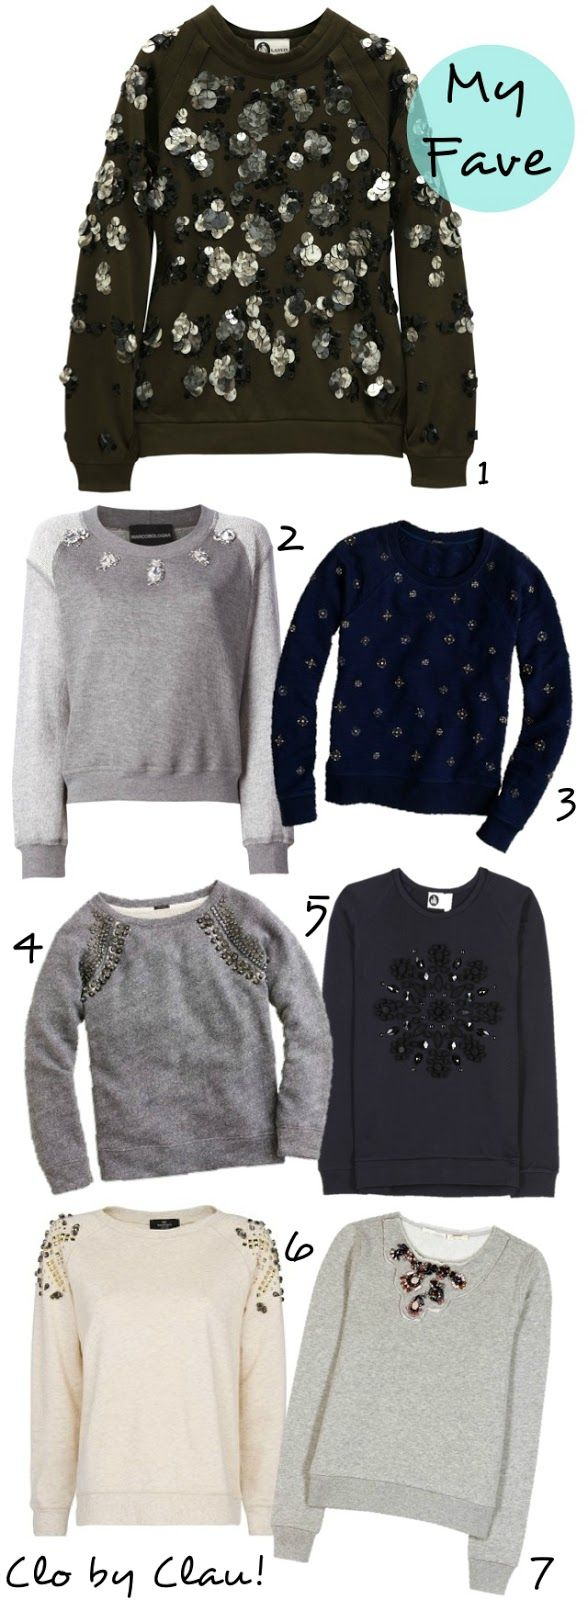 DIY Inspiration: Embellished Sweatshirt I dont like the first one but i like the rest